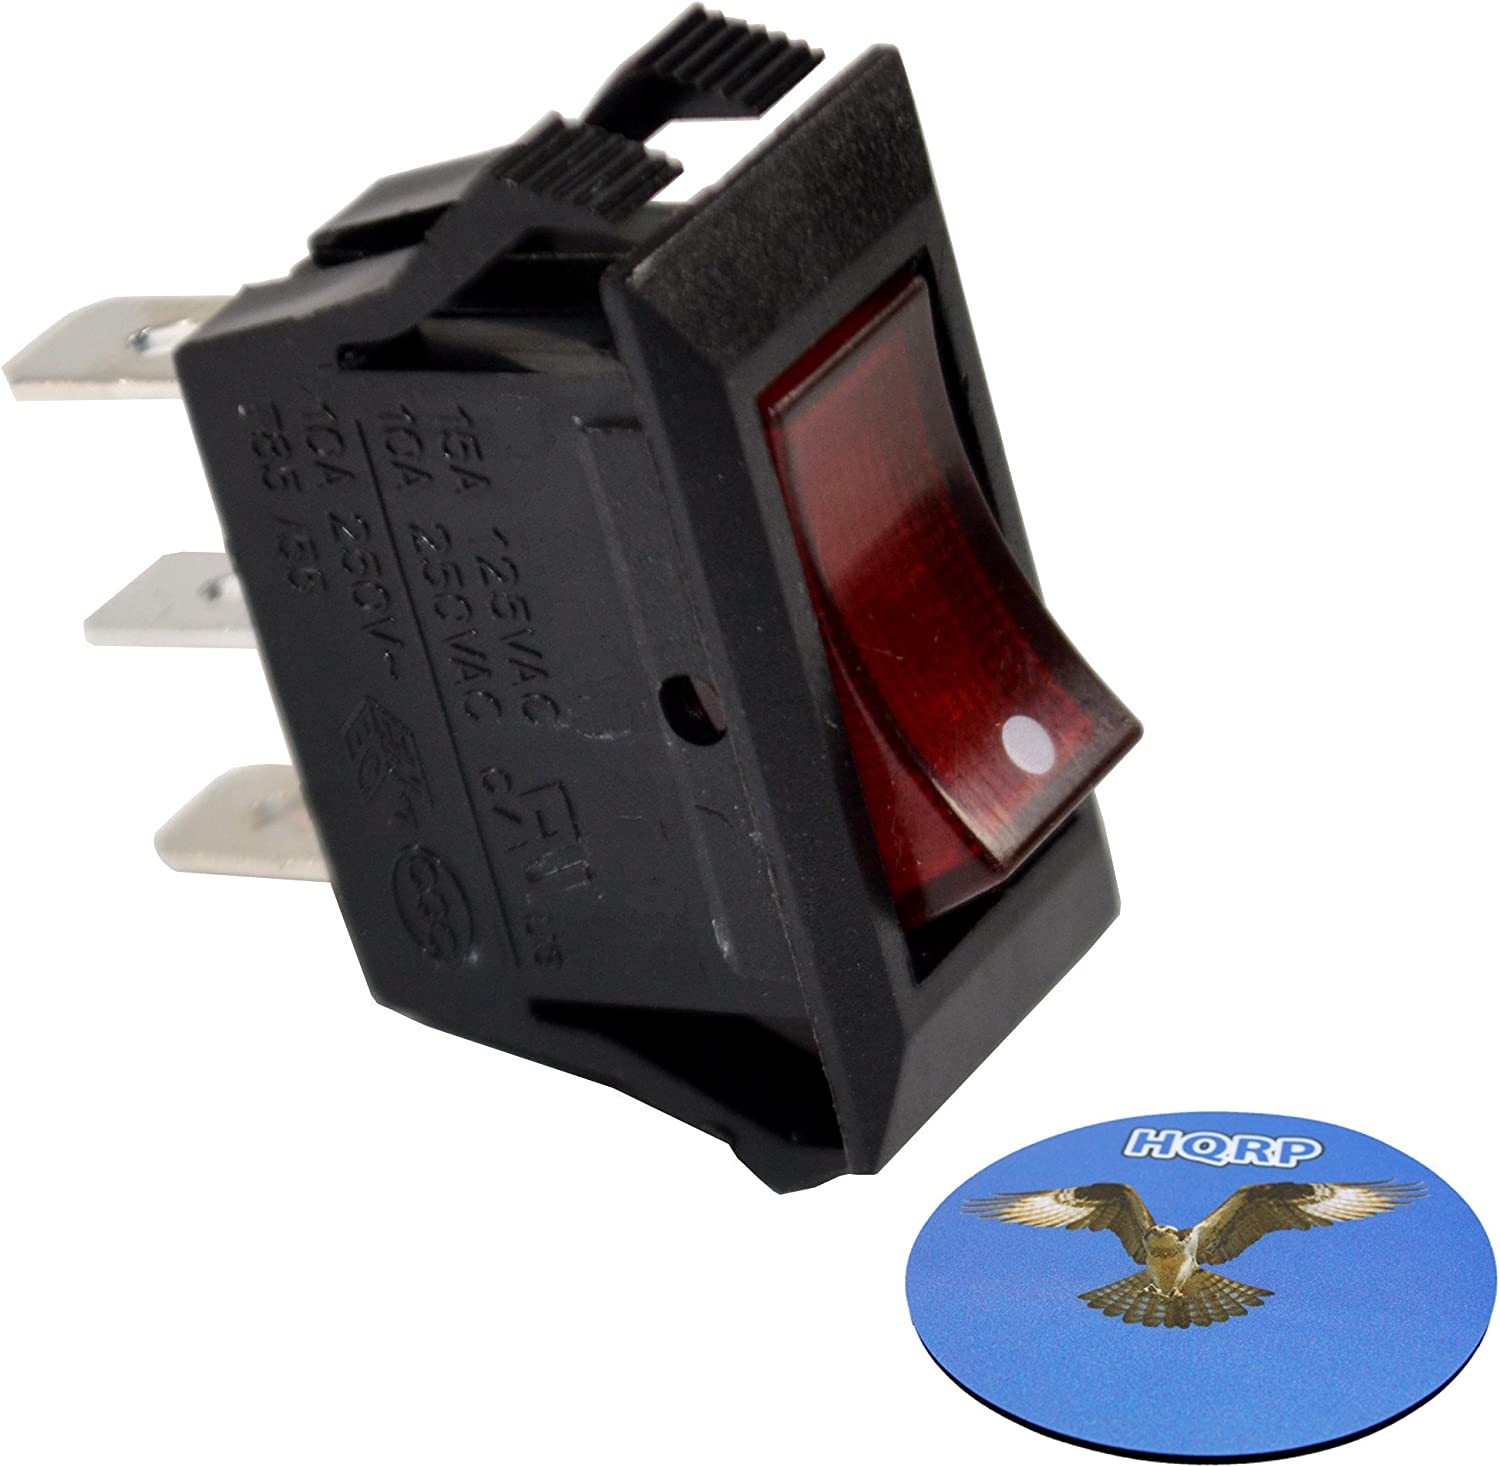 HQRP Illuminated Rocker Switch compatible with Automotive Applications, Marine Applications, Coffee Machines 125V 15A + HQRP Coaster